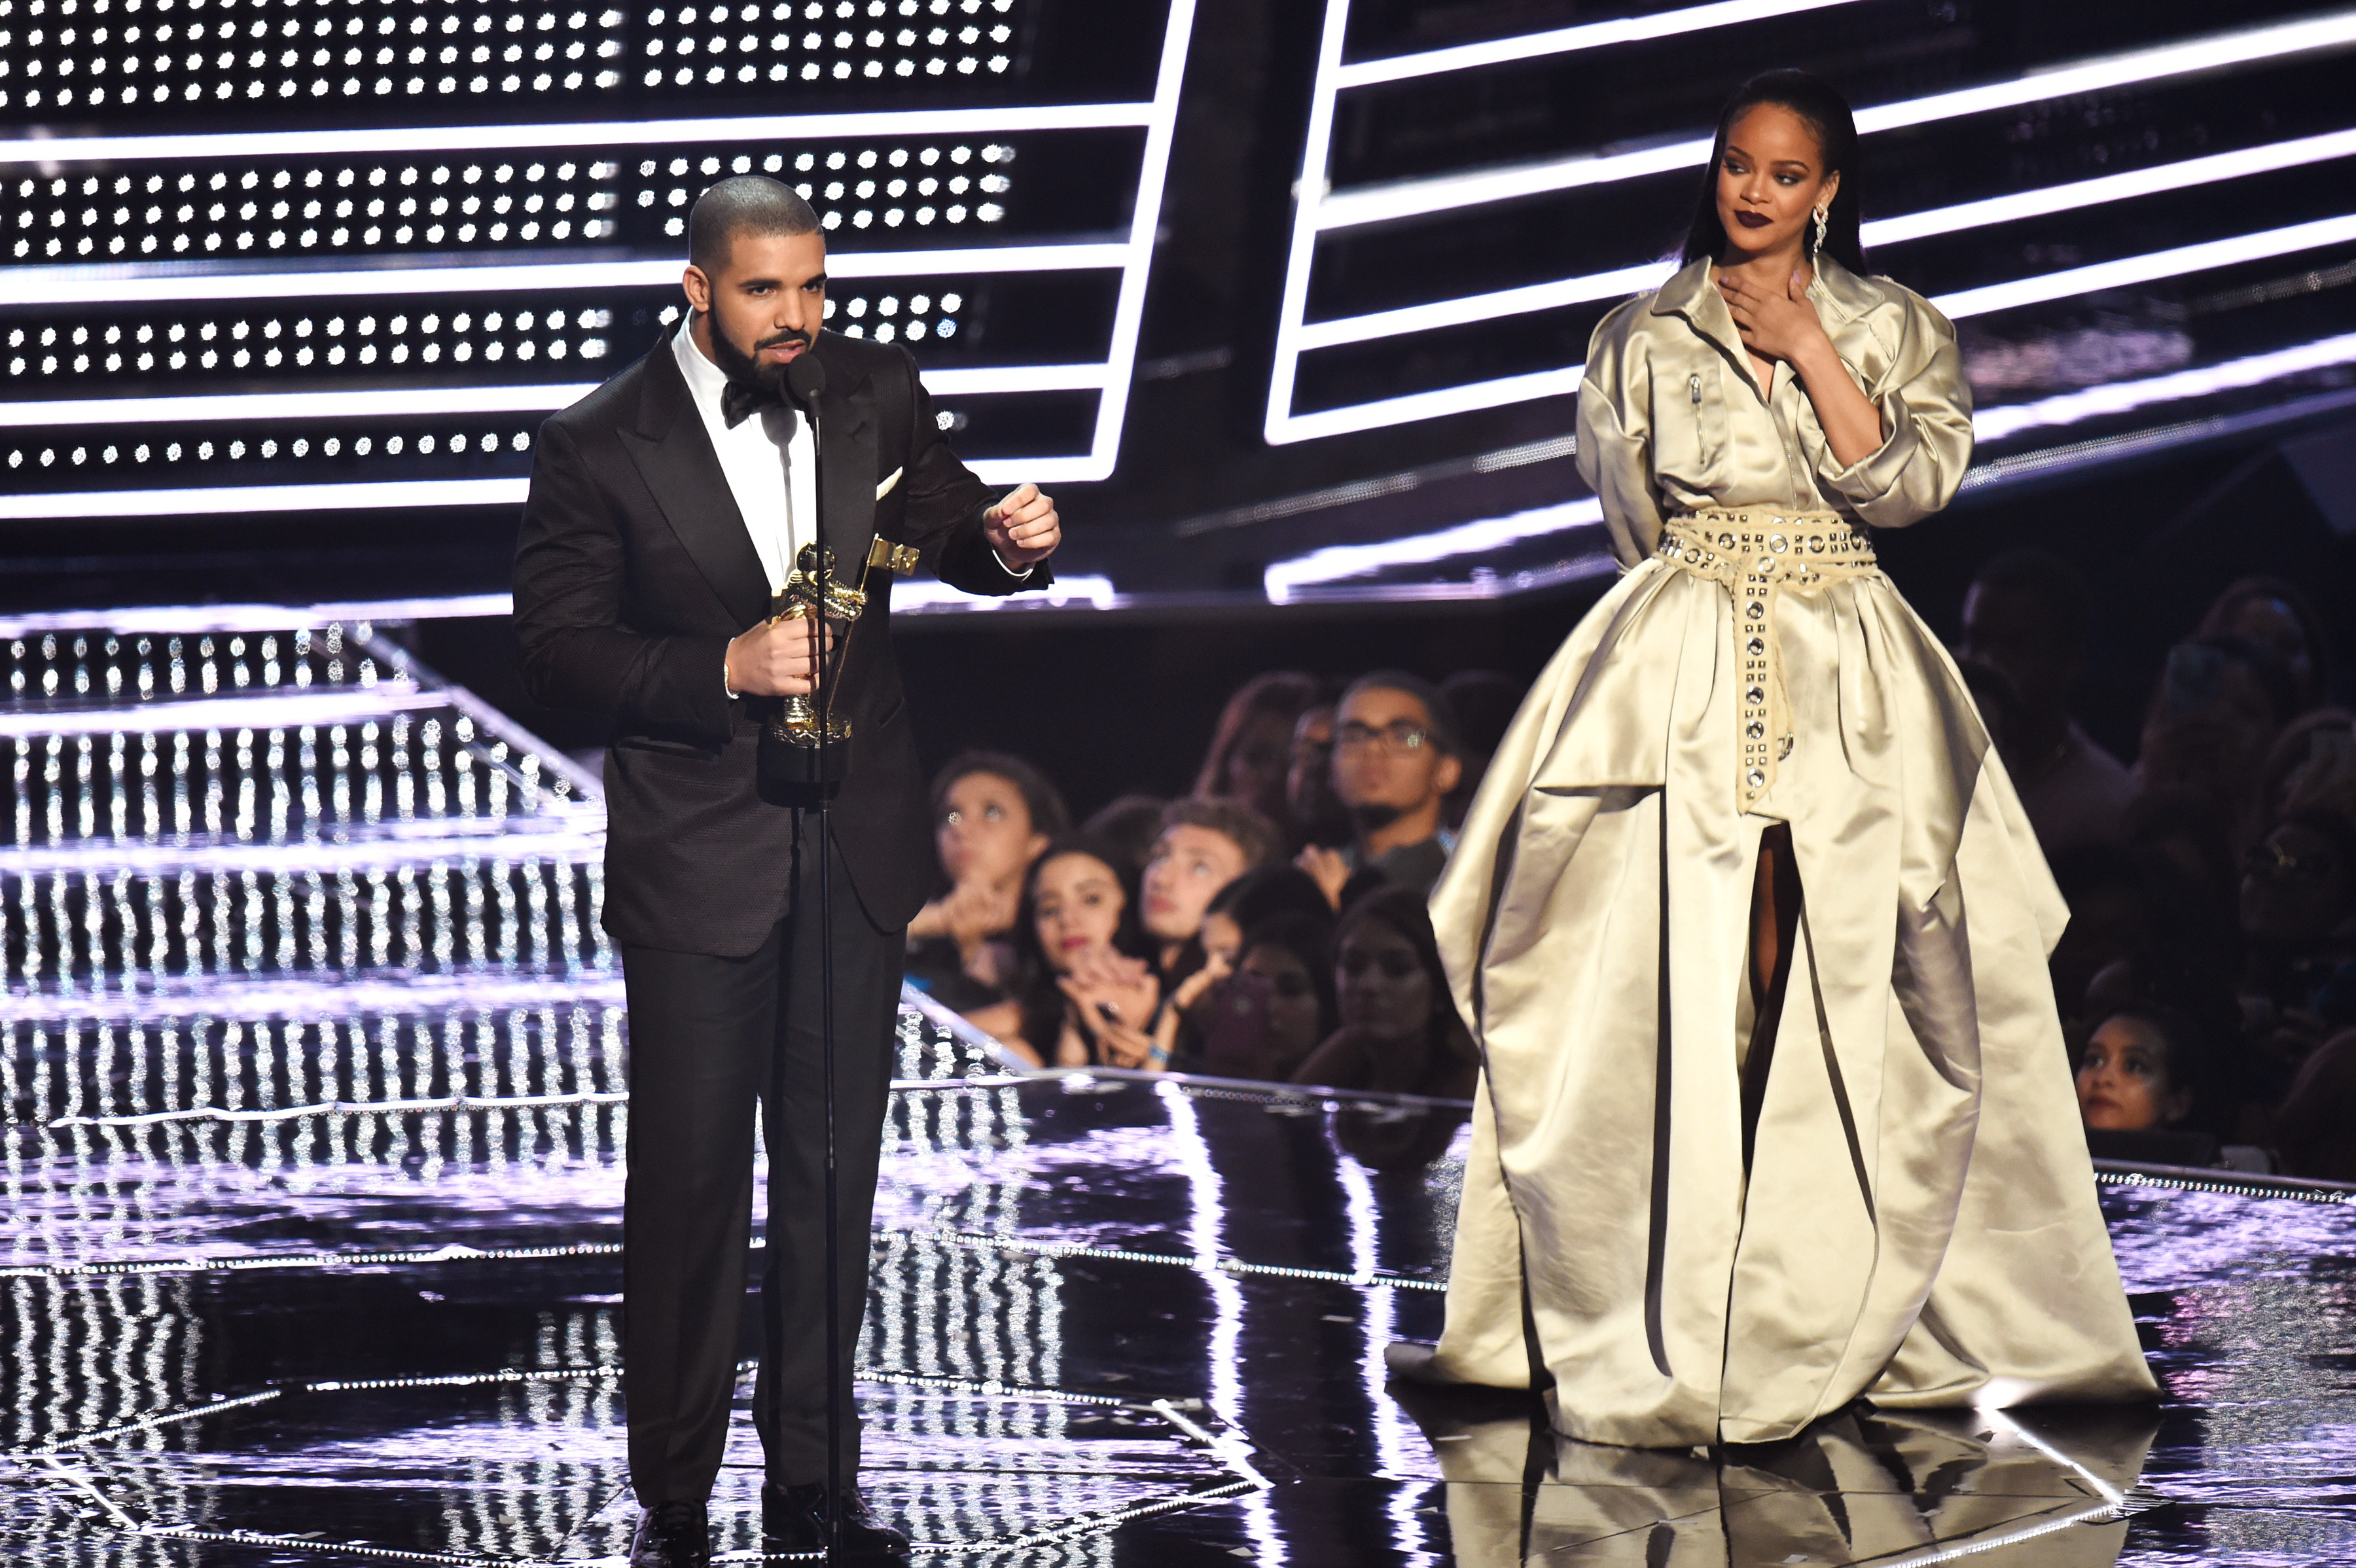 Drake's dad says he and Rihanna are just friends